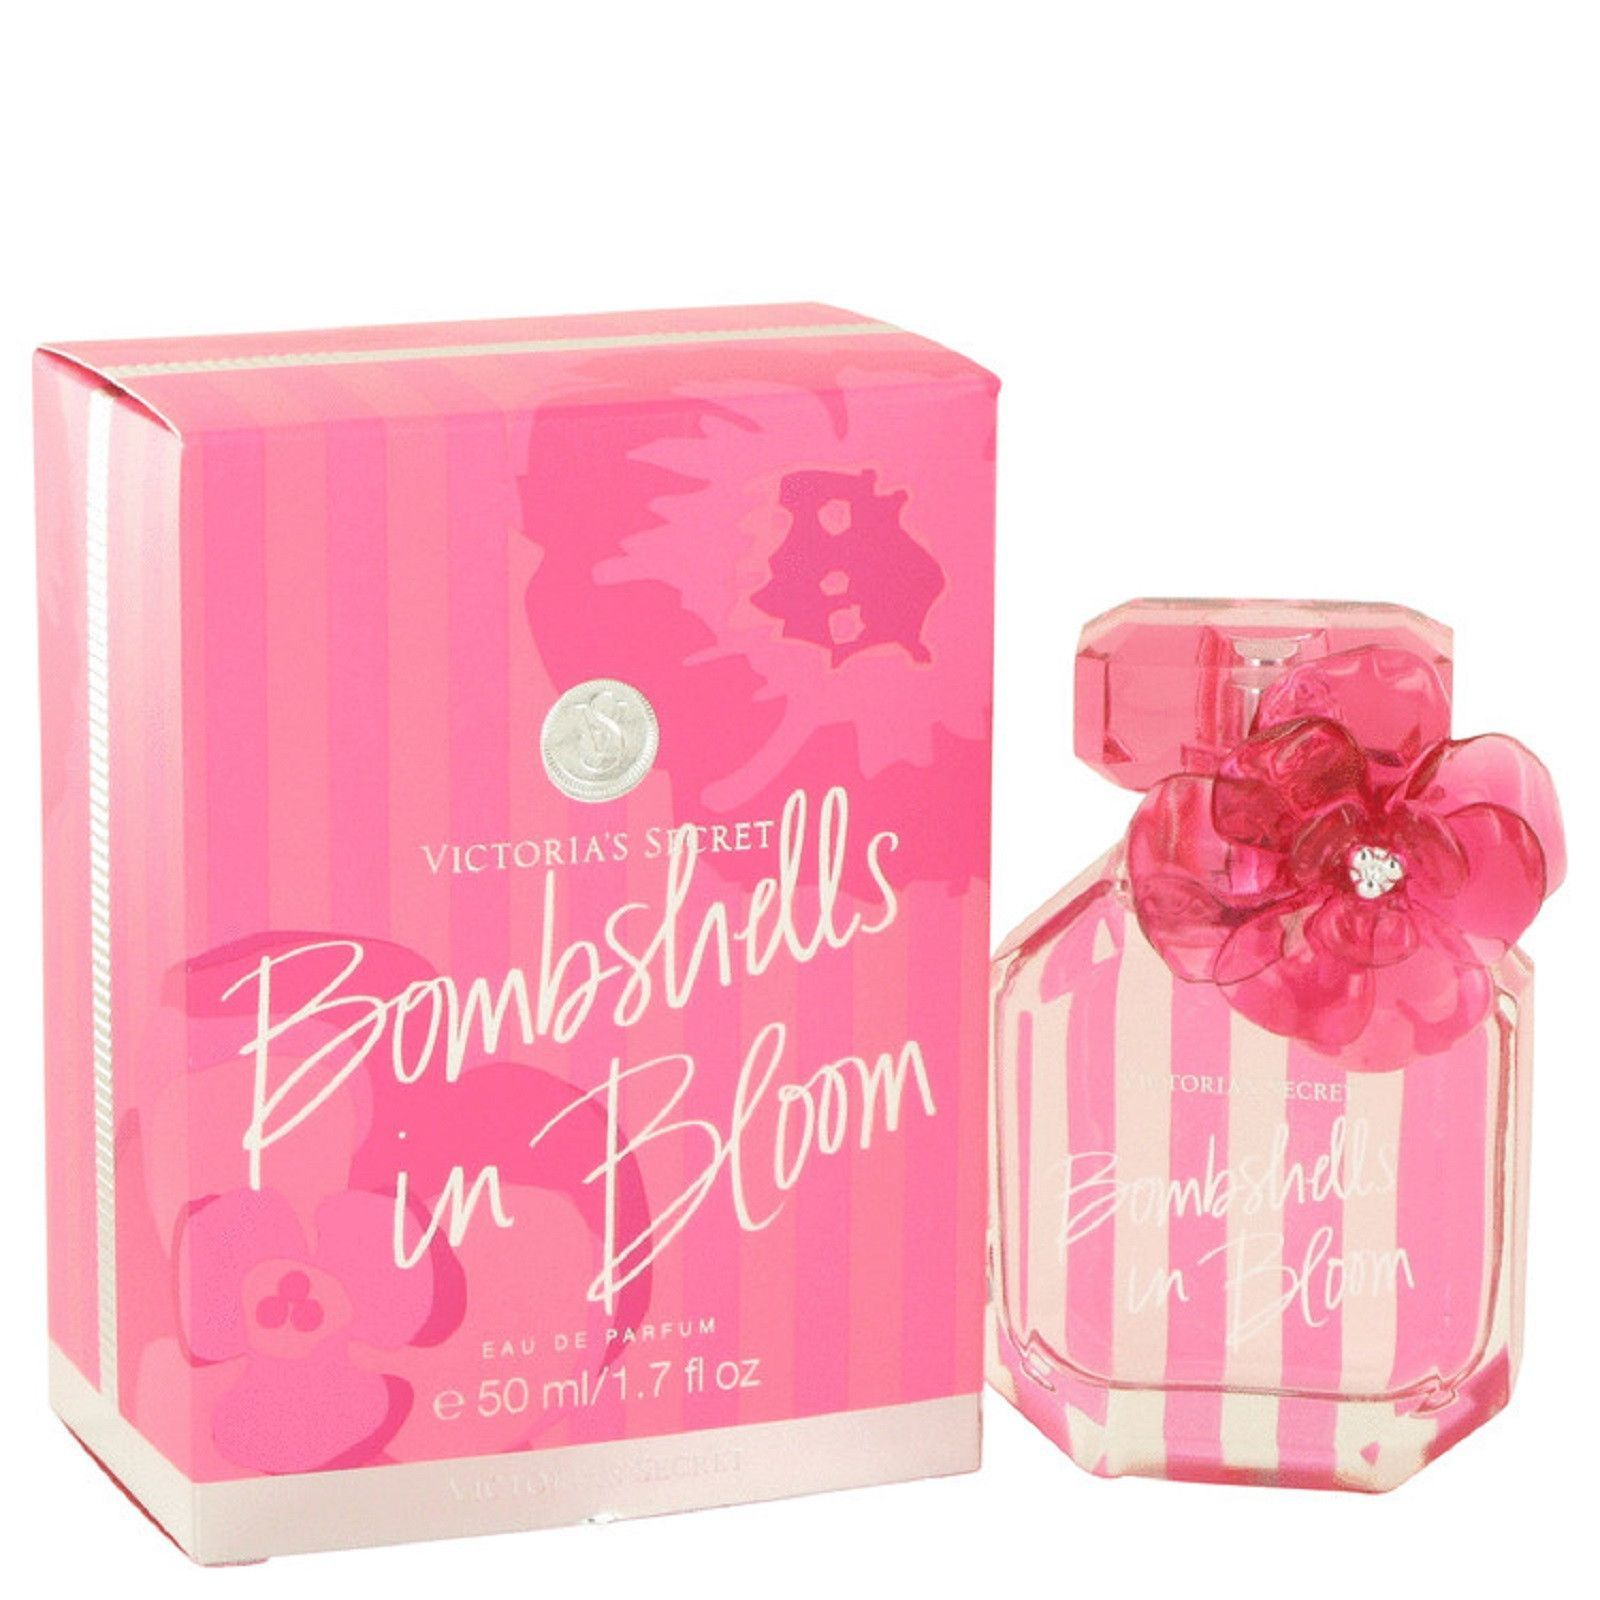 Bombshells In Bloom Perfume by Victoria's Secret, Introduced in 2014 by victoria's secret, bombshells in bloom is a fresh fragrance for women that will inspire you to be the best . This scent combines